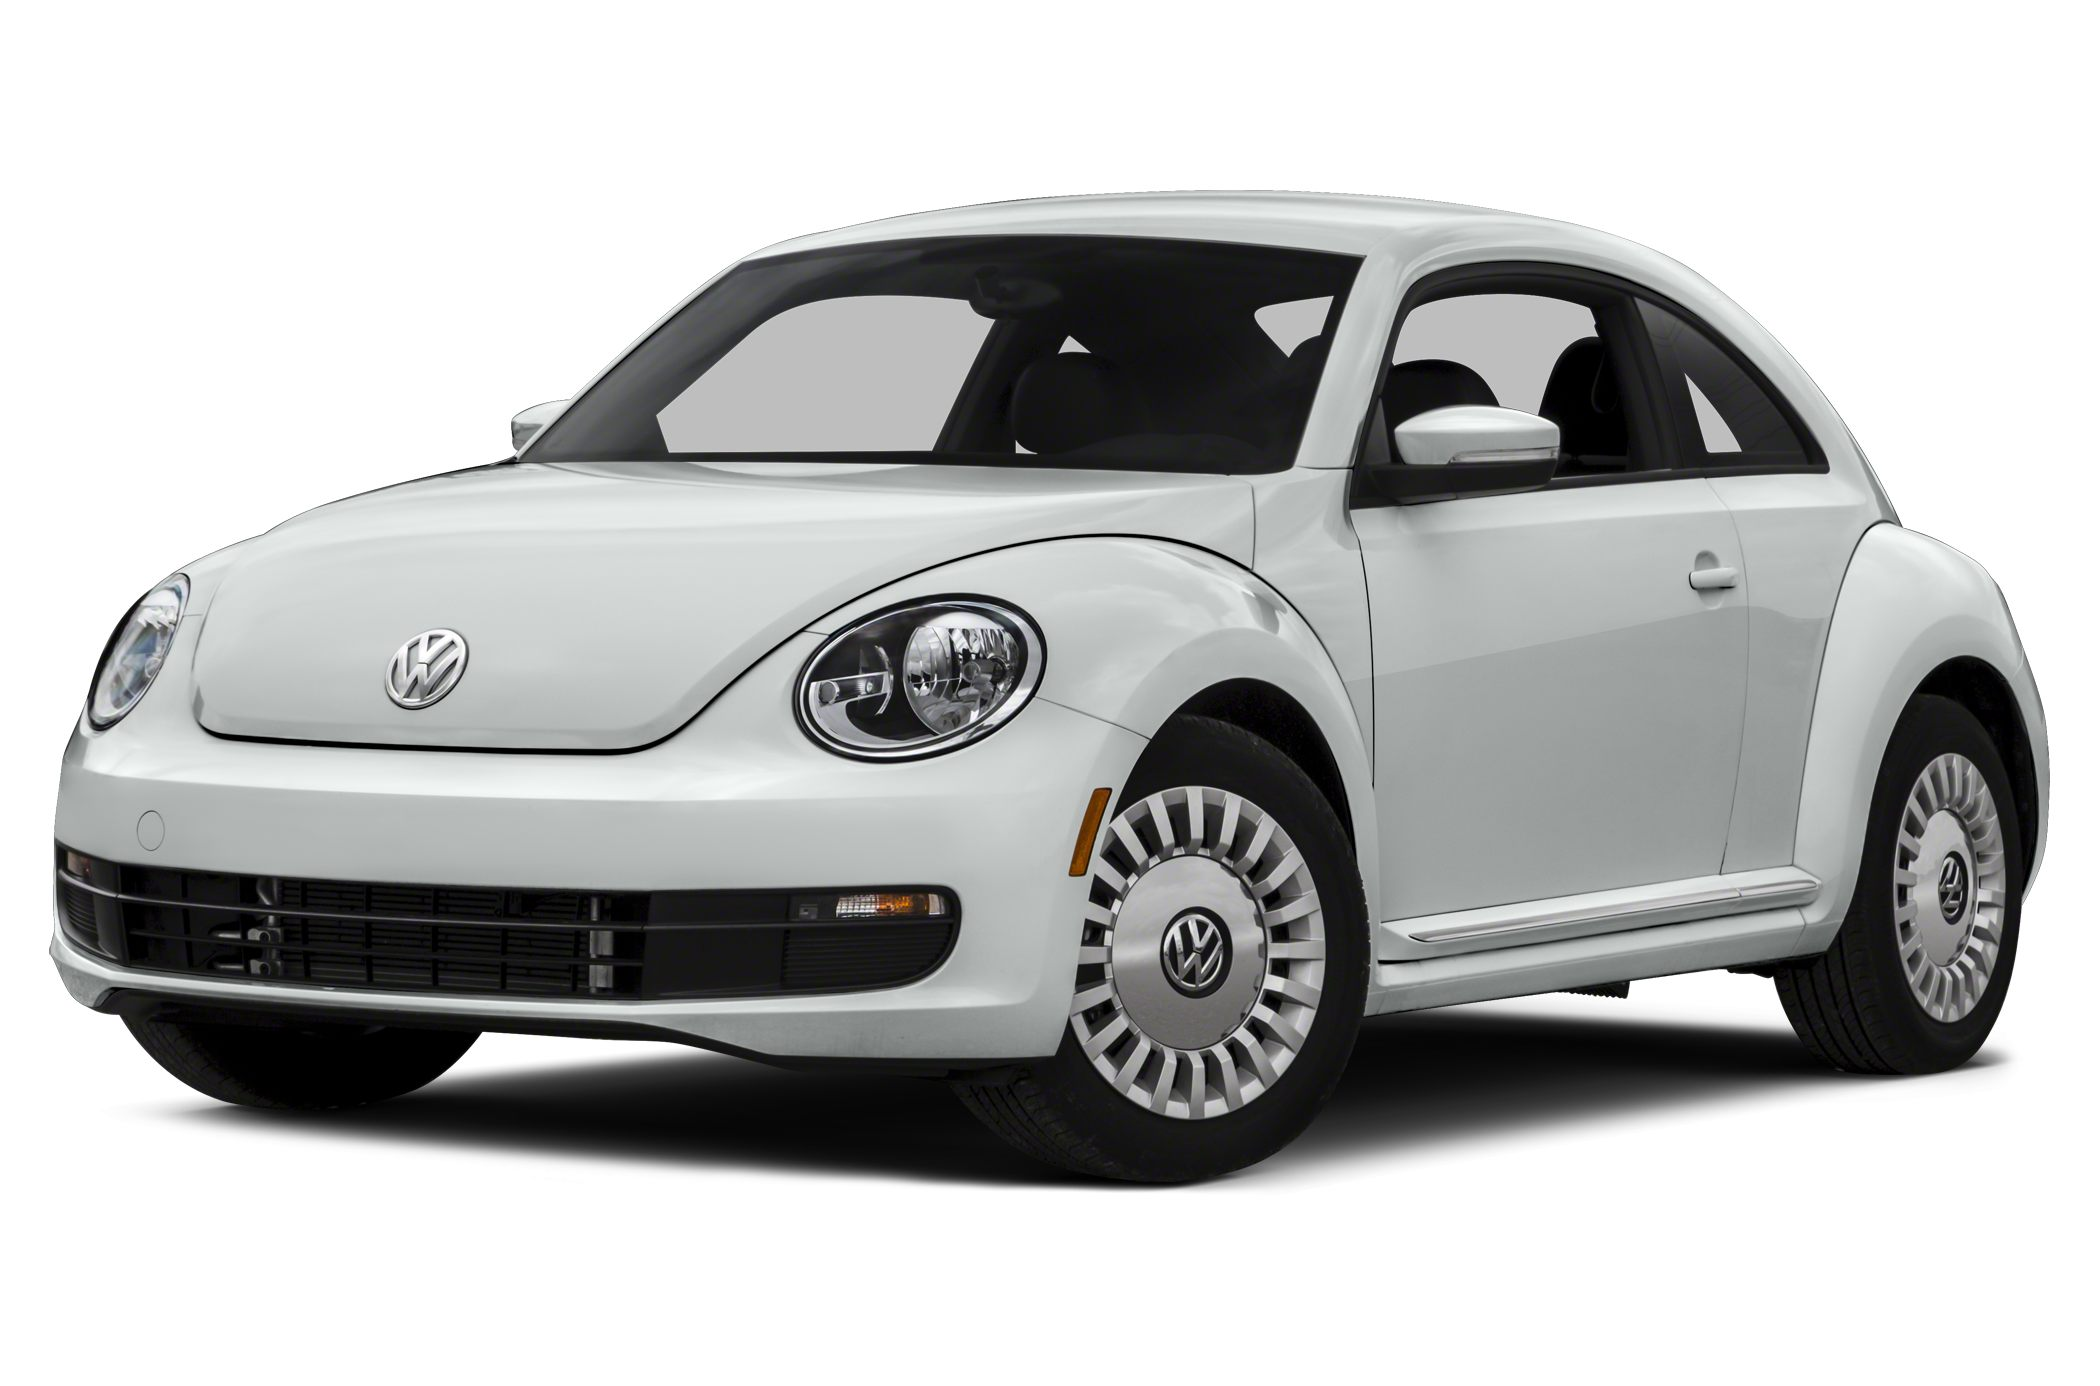 recharge wrap up vw beetle ev epa could allow higher ethanol blends autoblog. Black Bedroom Furniture Sets. Home Design Ideas